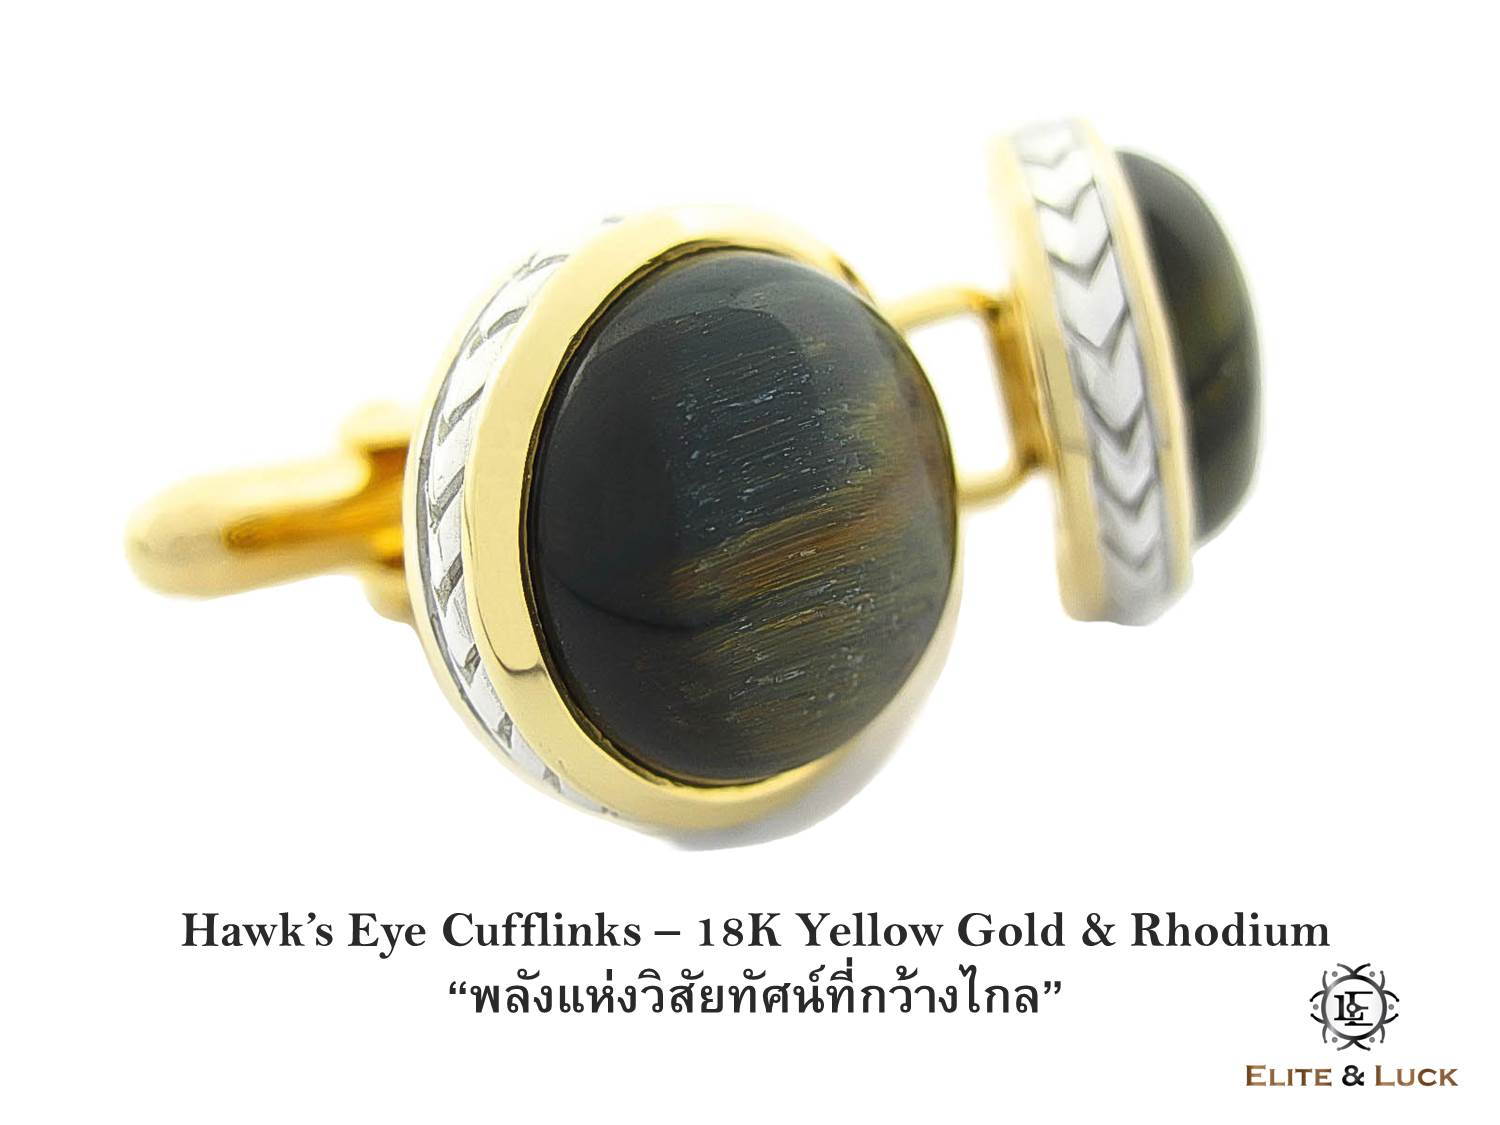 Hawk's Eye Sterling Silver Cufflinks สี 18K Yellow Gold & Rhodium รุ่น Limited